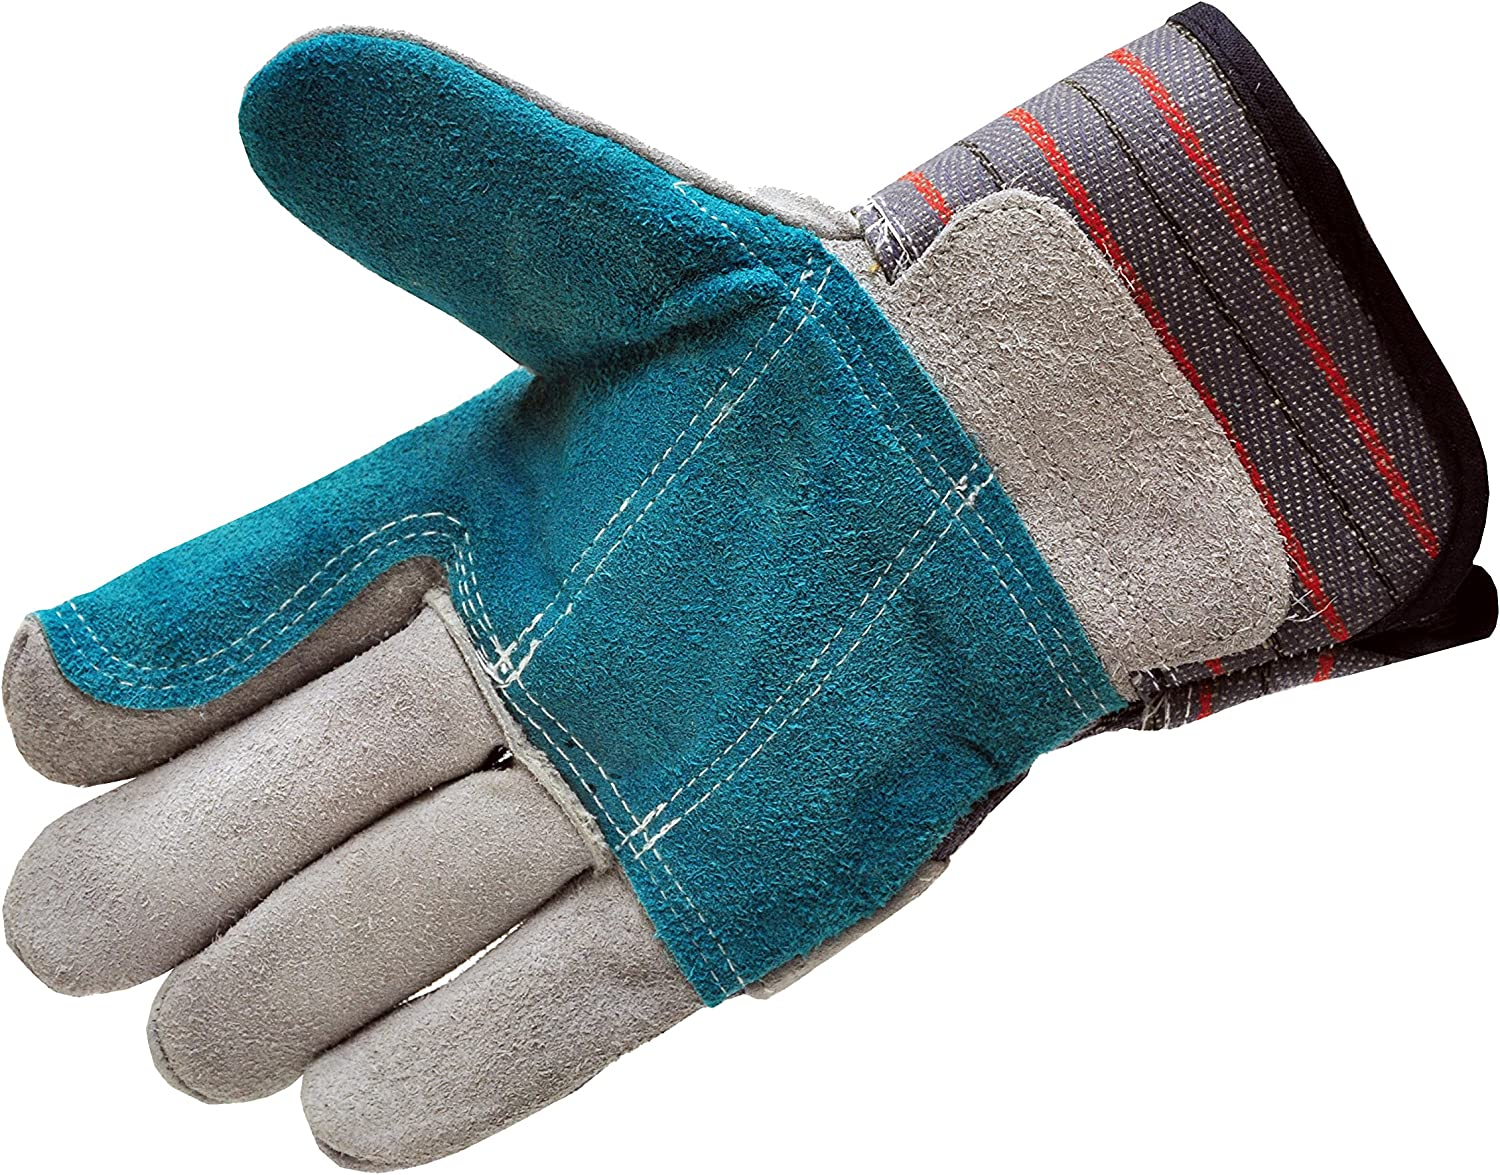 G & F Products G & F 5215L-5 Premium Suede Double Palm & Index Finger Work Gloves with 2 & 1/2 Rubberized Safety Cuff, 5 Pair Pack, Large